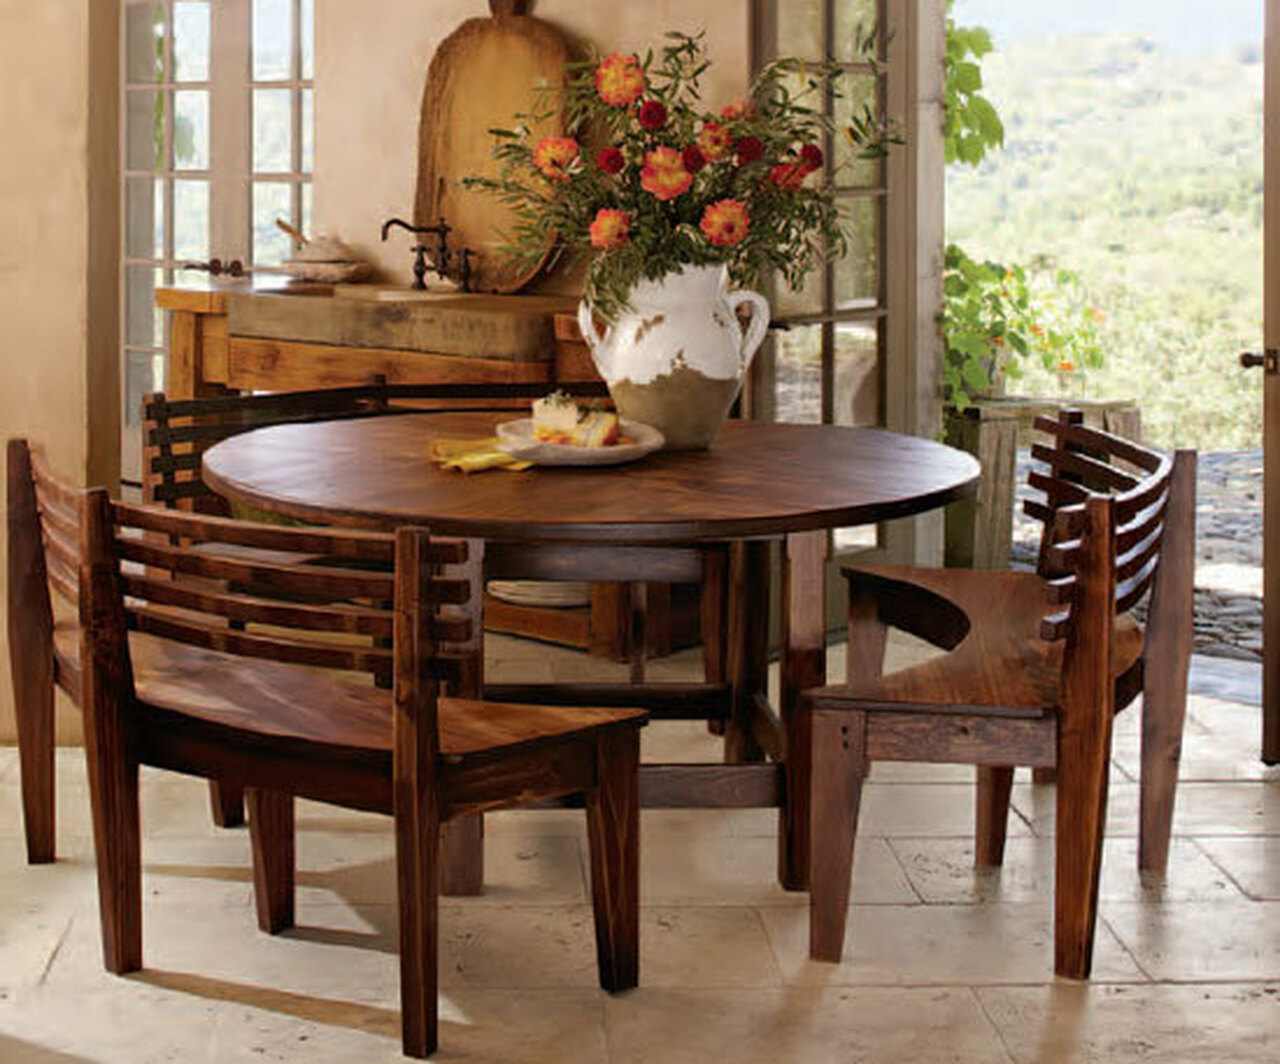 Superieur Dining Sets With Benches Wooden Round Table Wooden Curves Benches